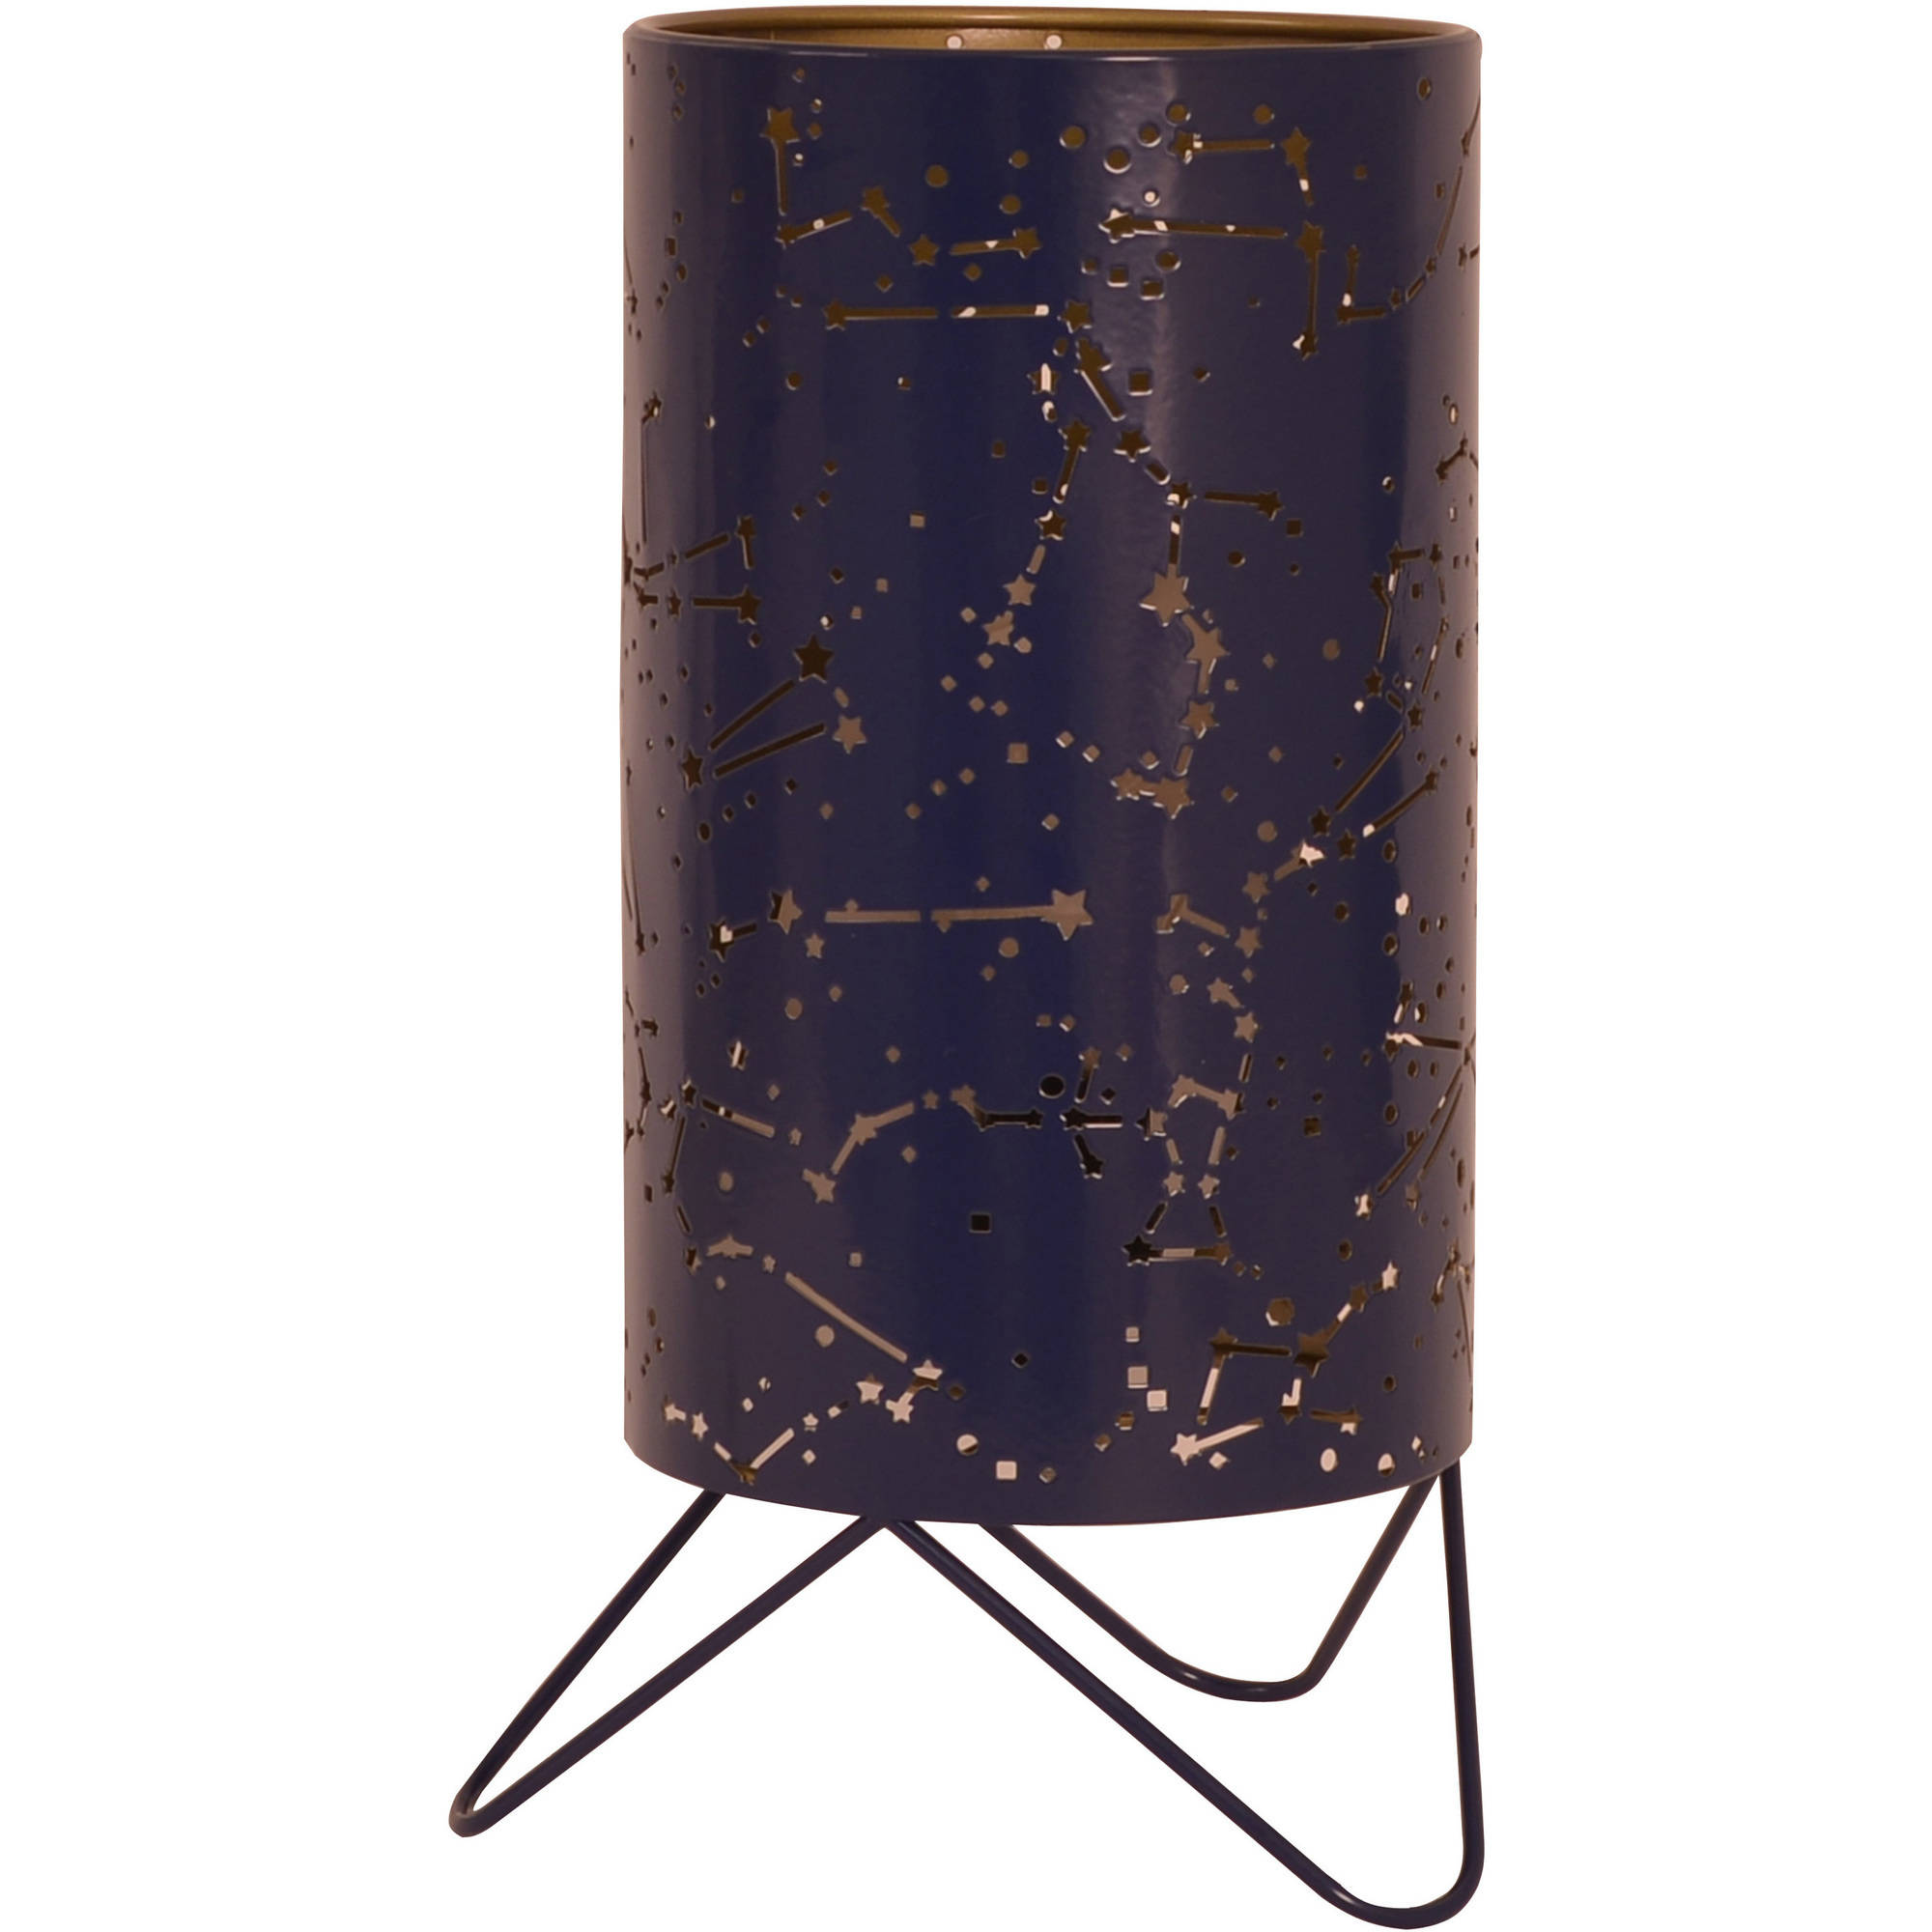 Better Homes and Gardens Blue Constellation Lamp